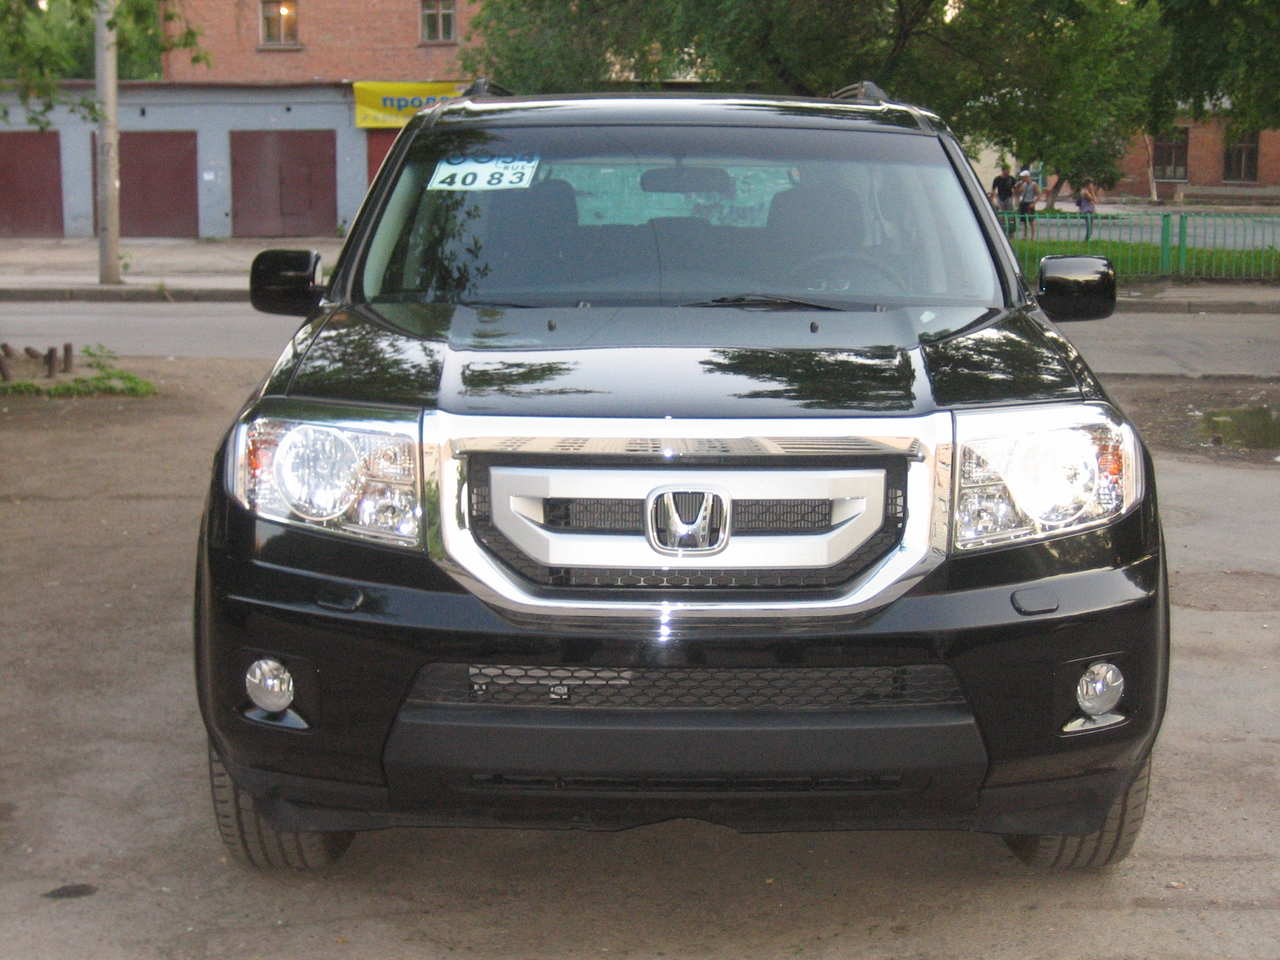 used 2008 honda pilot photos 3500cc gasoline automatic for sale. Black Bedroom Furniture Sets. Home Design Ideas